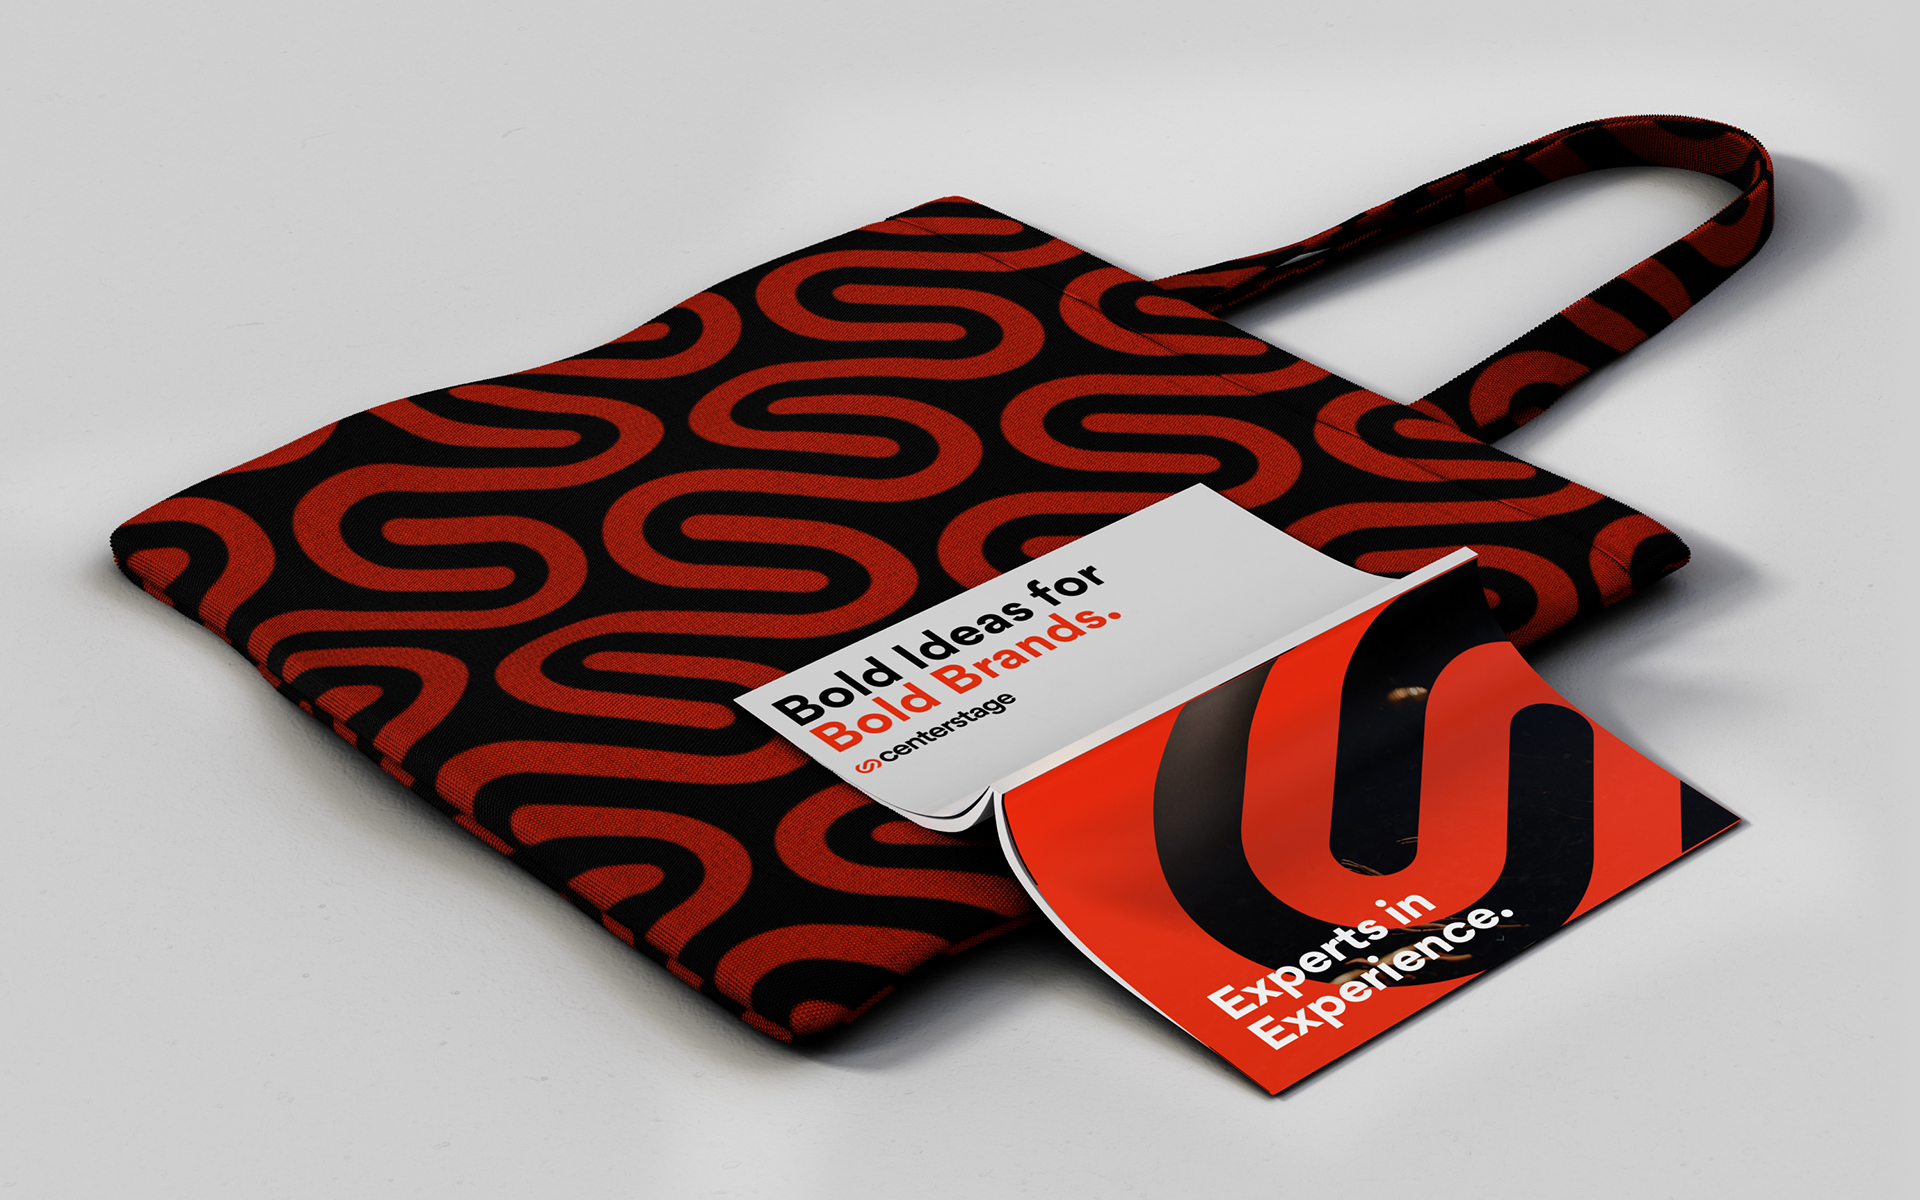 tote bag featuring patterned Centerstage logo with book laying open on top